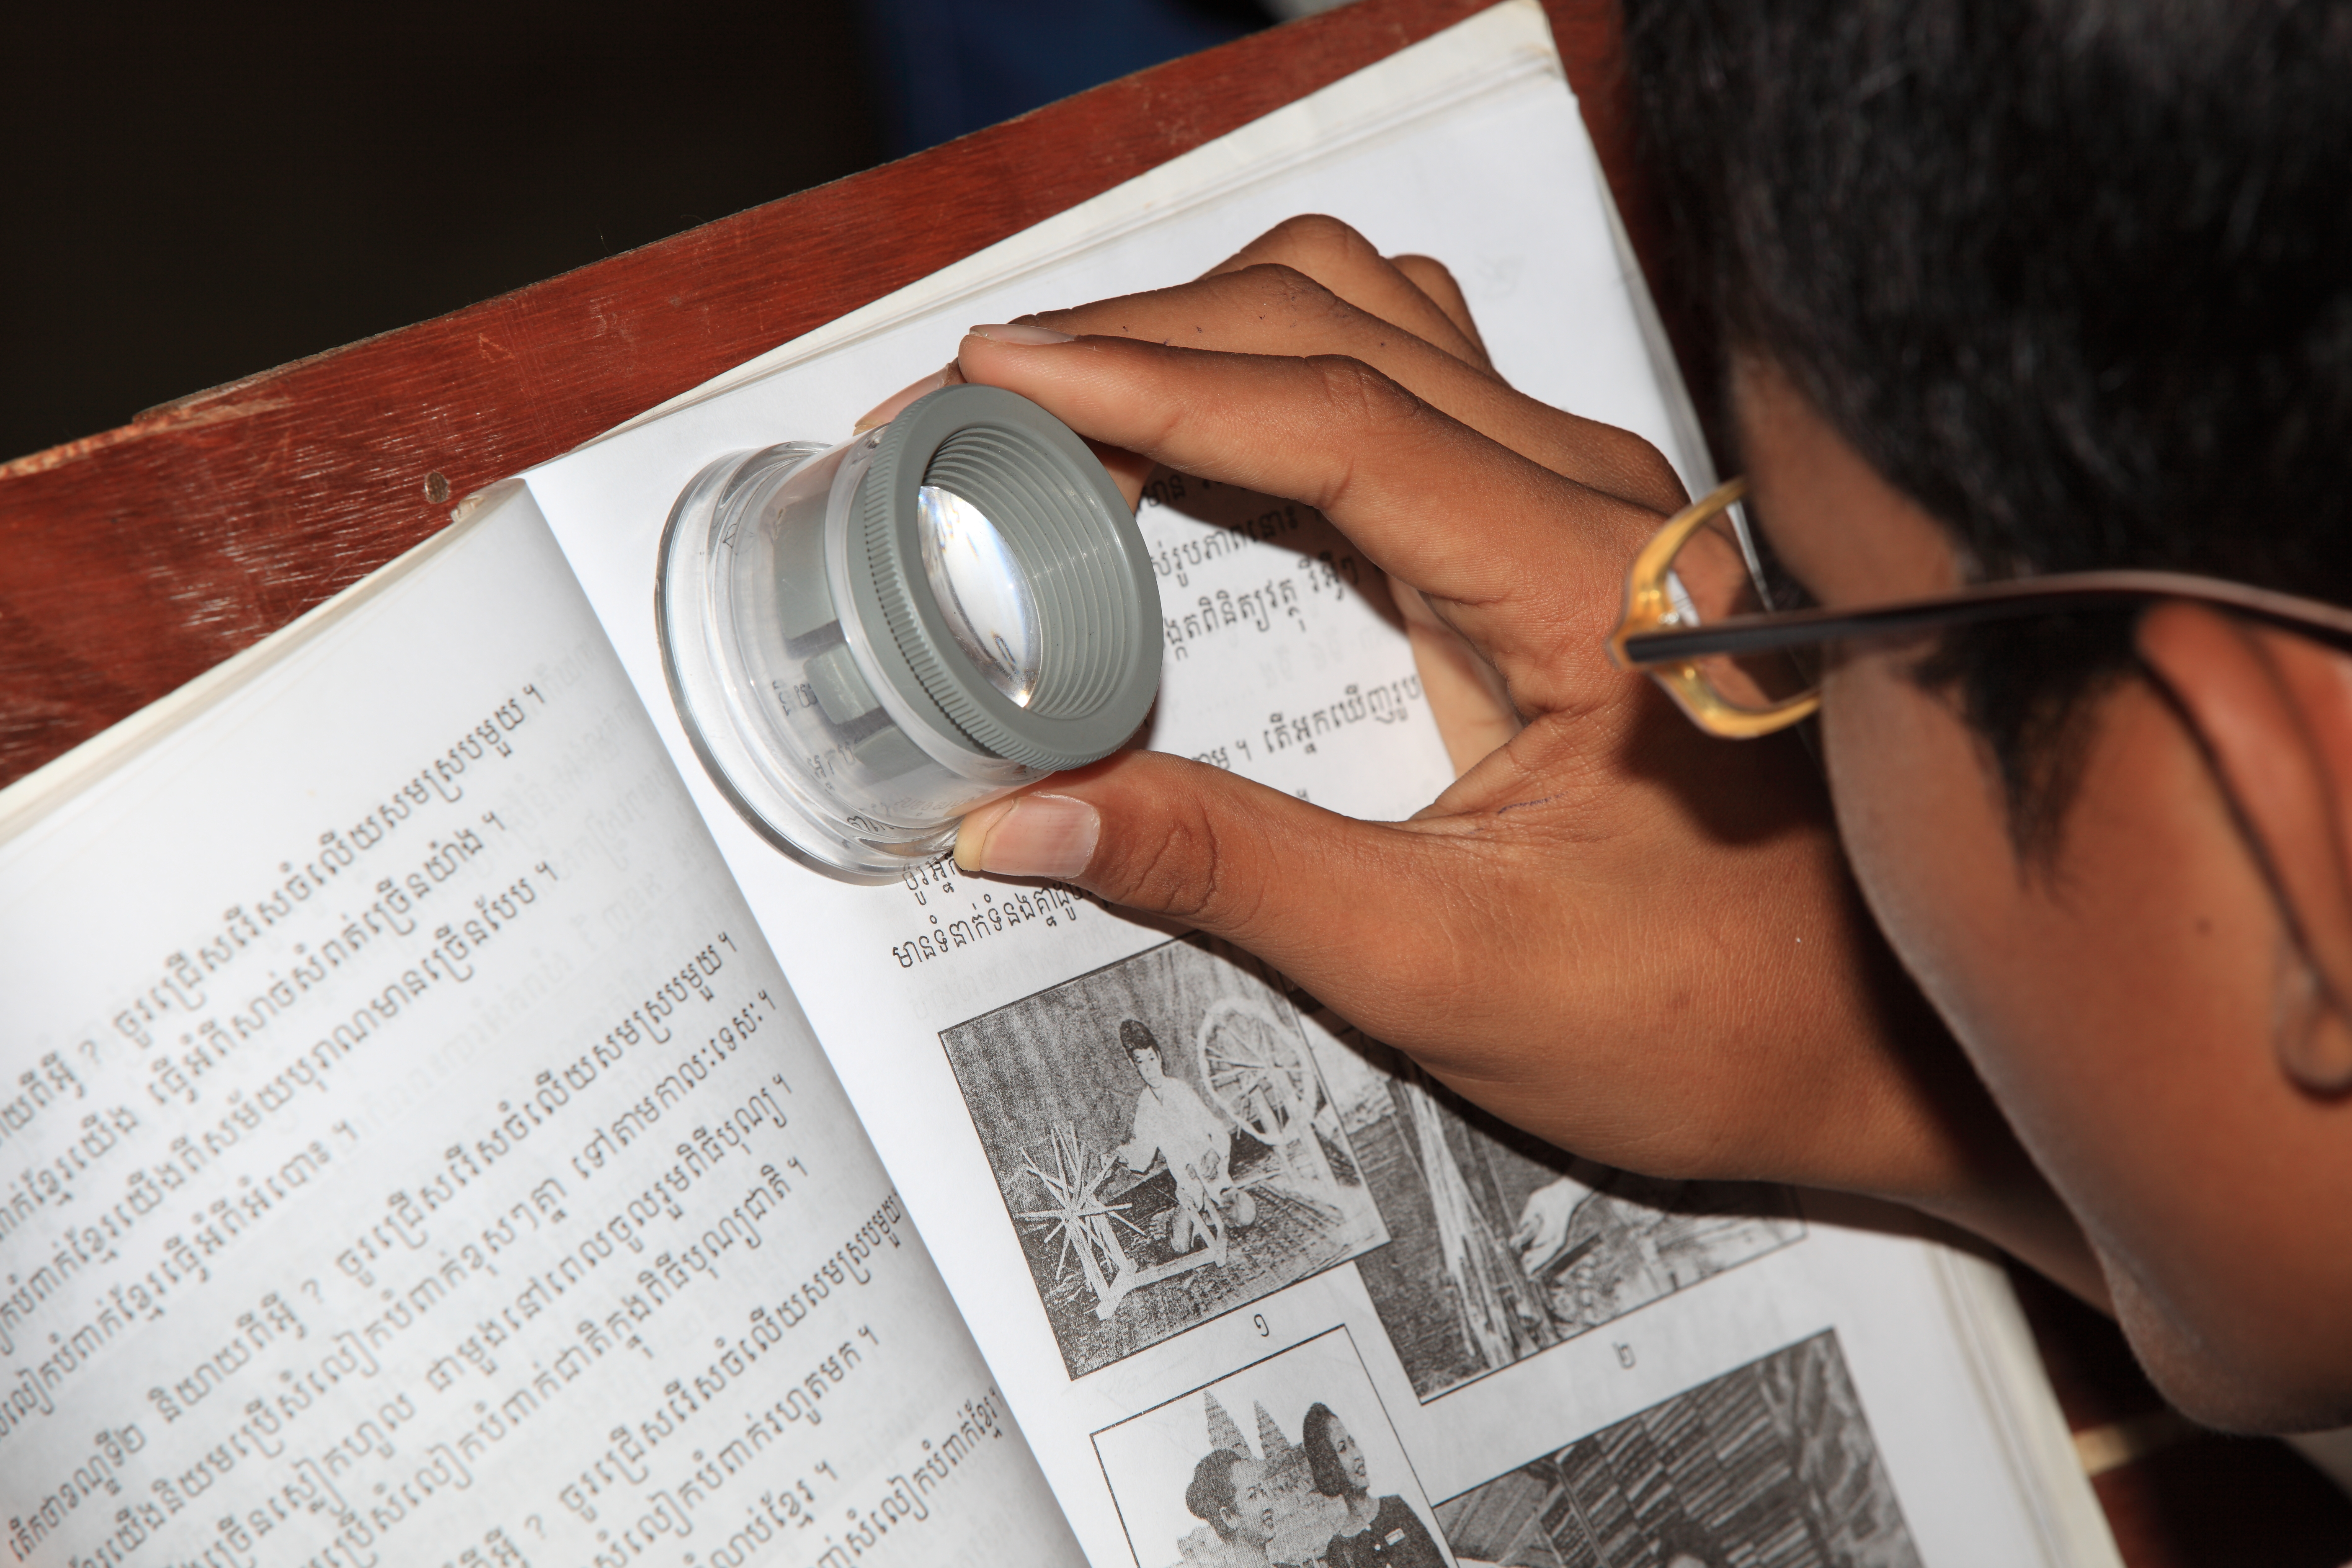 Using a stand magnifier to read writing on the pages of a book